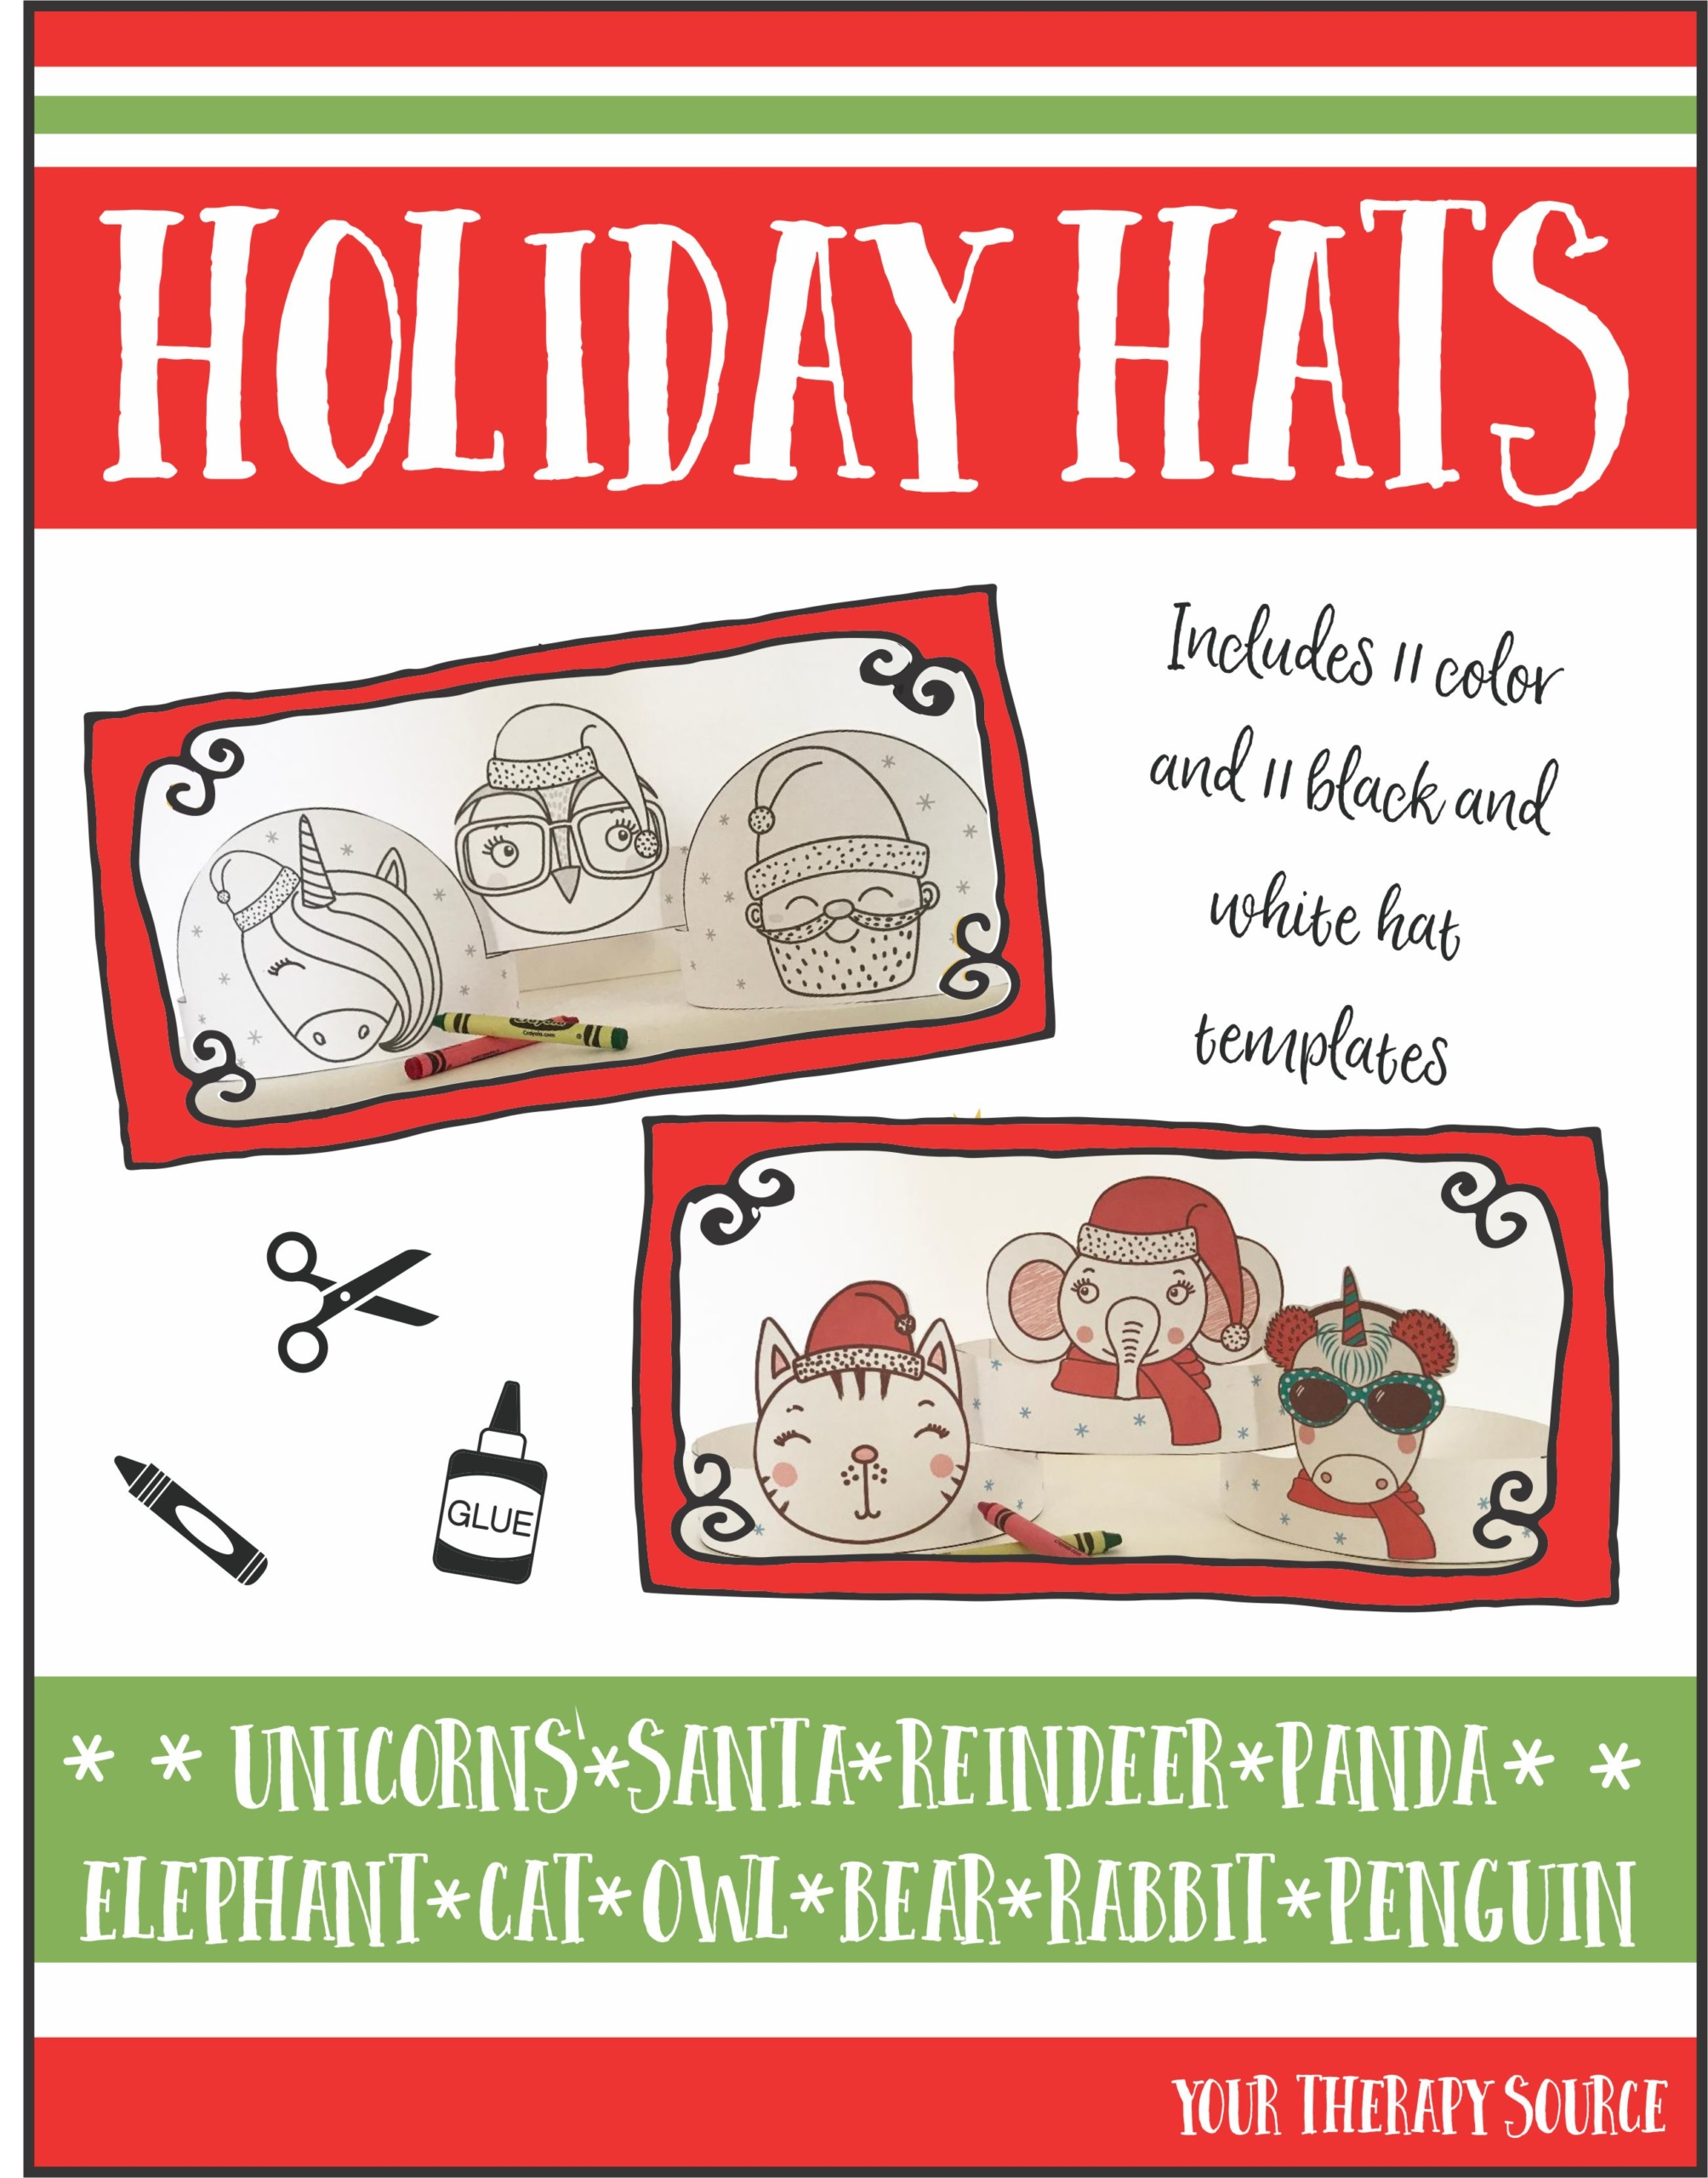 Holiday Hats from Your Therapy Source